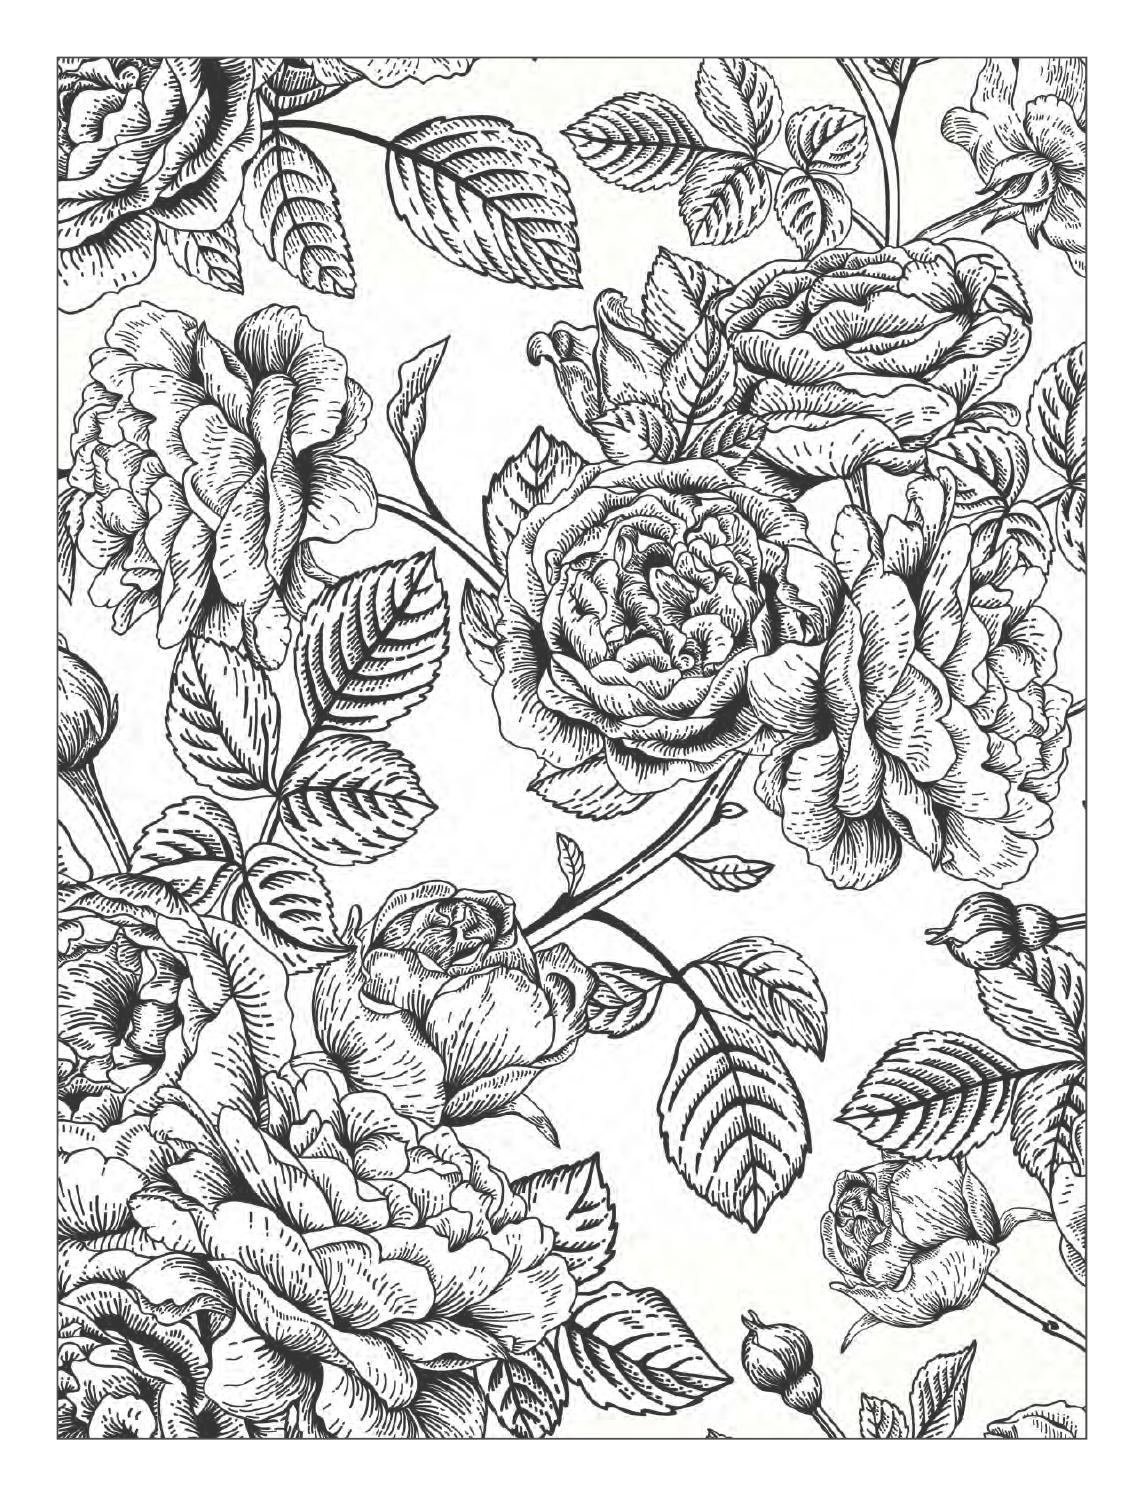 The Best Free Stoner Coloring Page Images Download From 50 Free